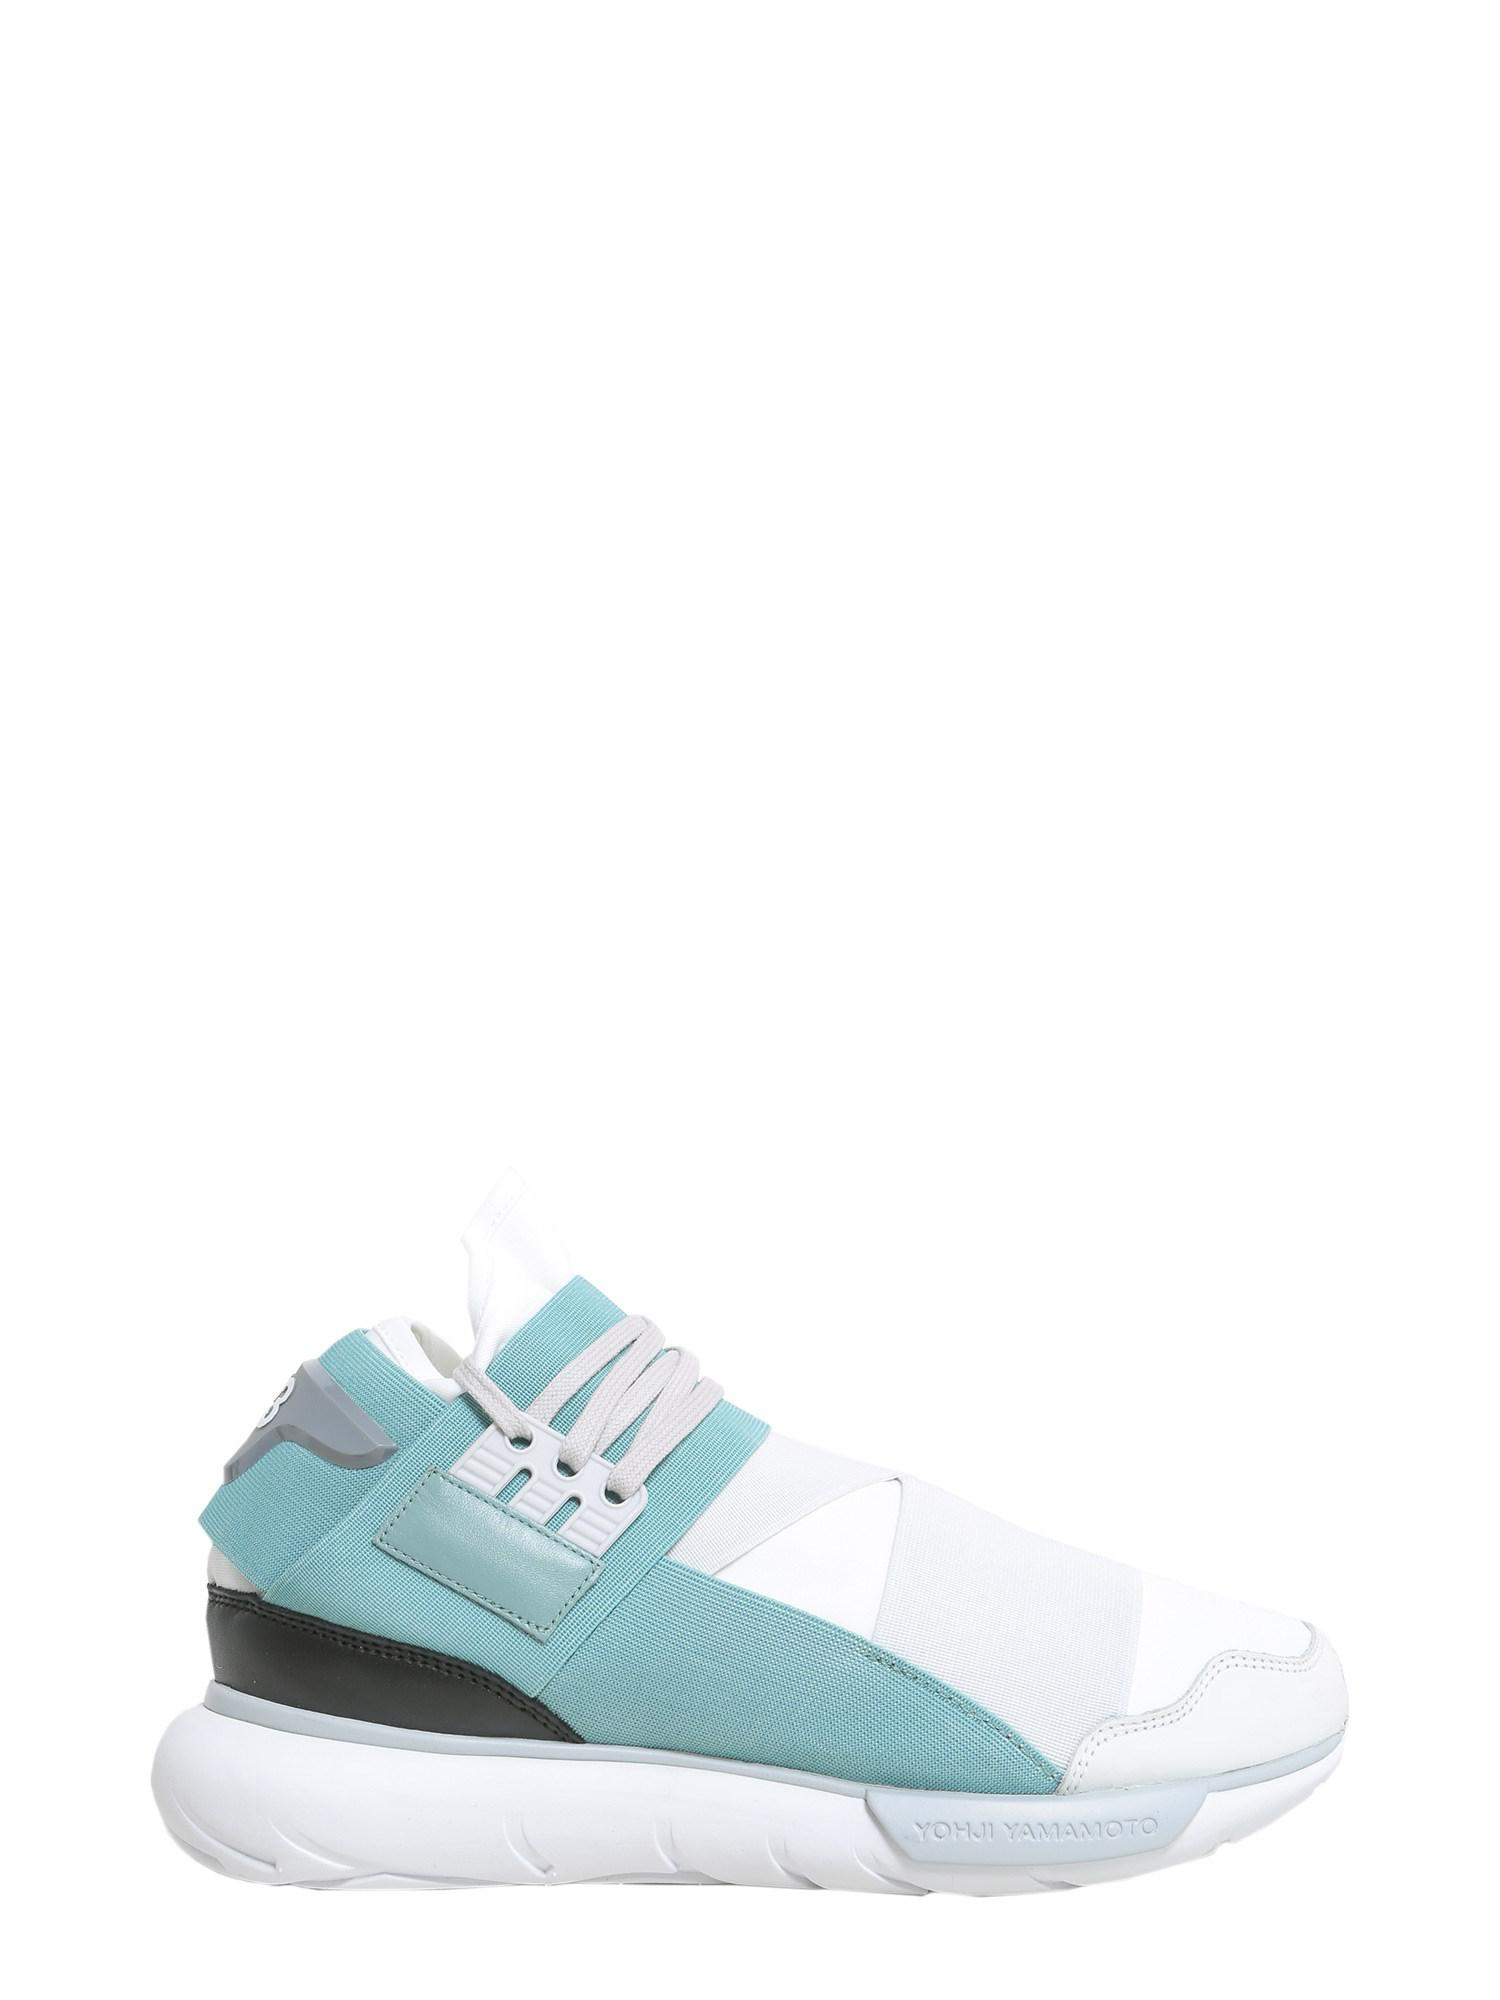 4029f71209c0c Y-3 Qasa High Woven Sneakers in White - Lyst